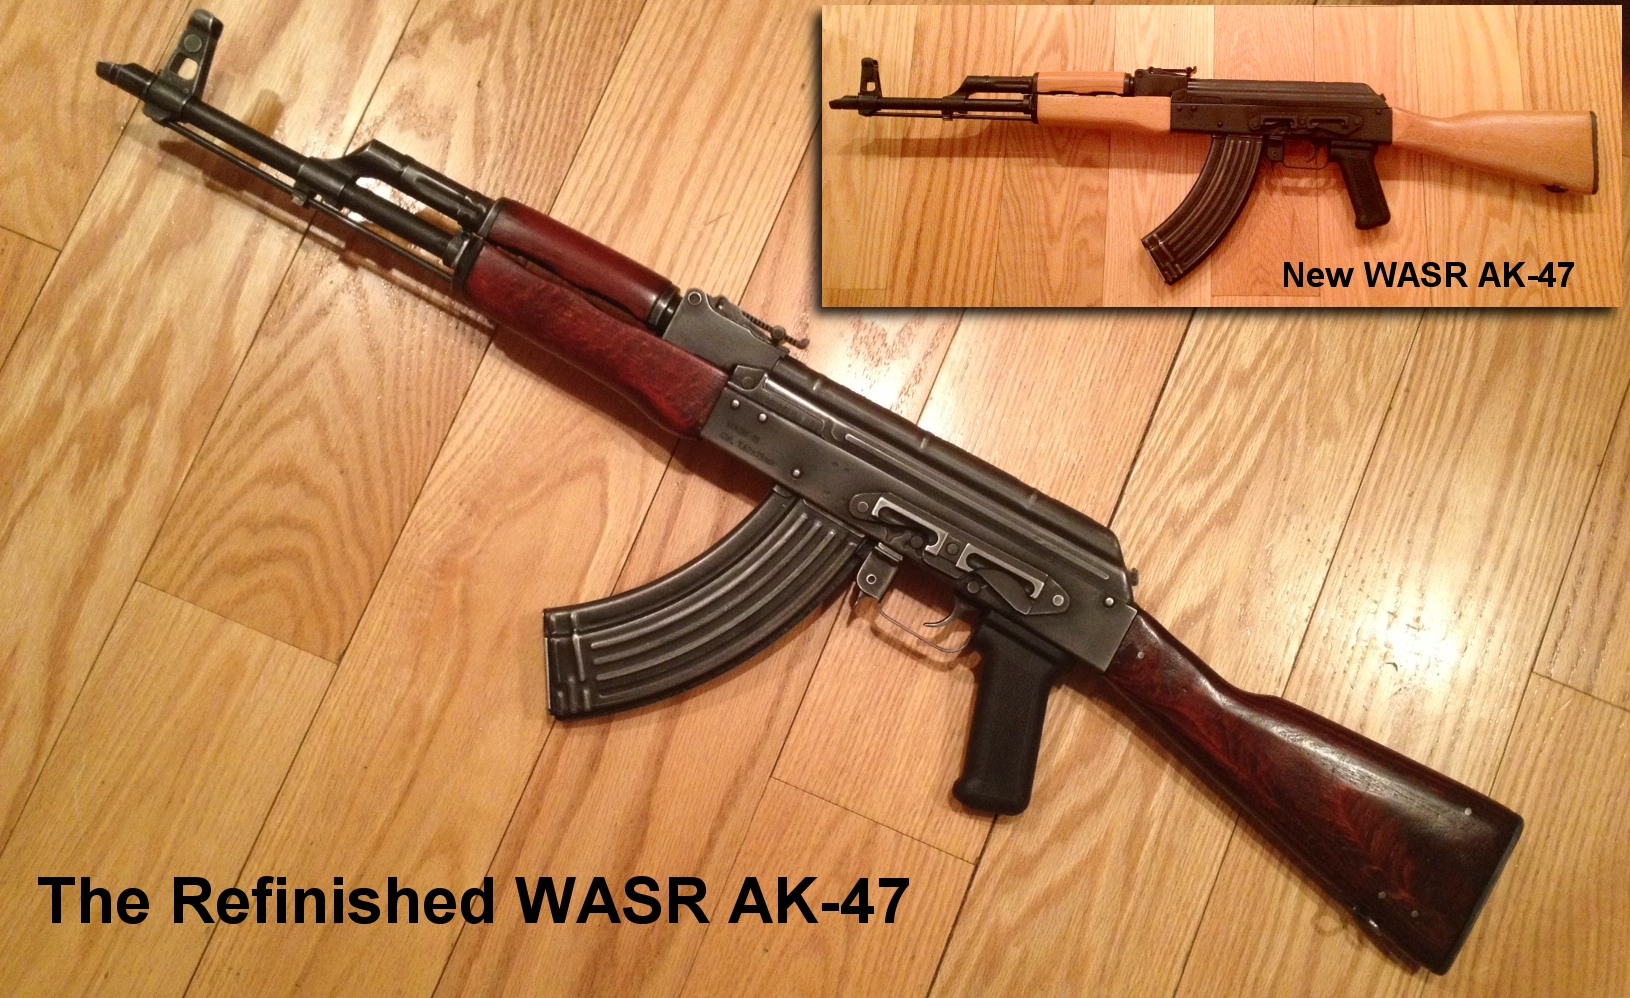 The Refinished AK-47